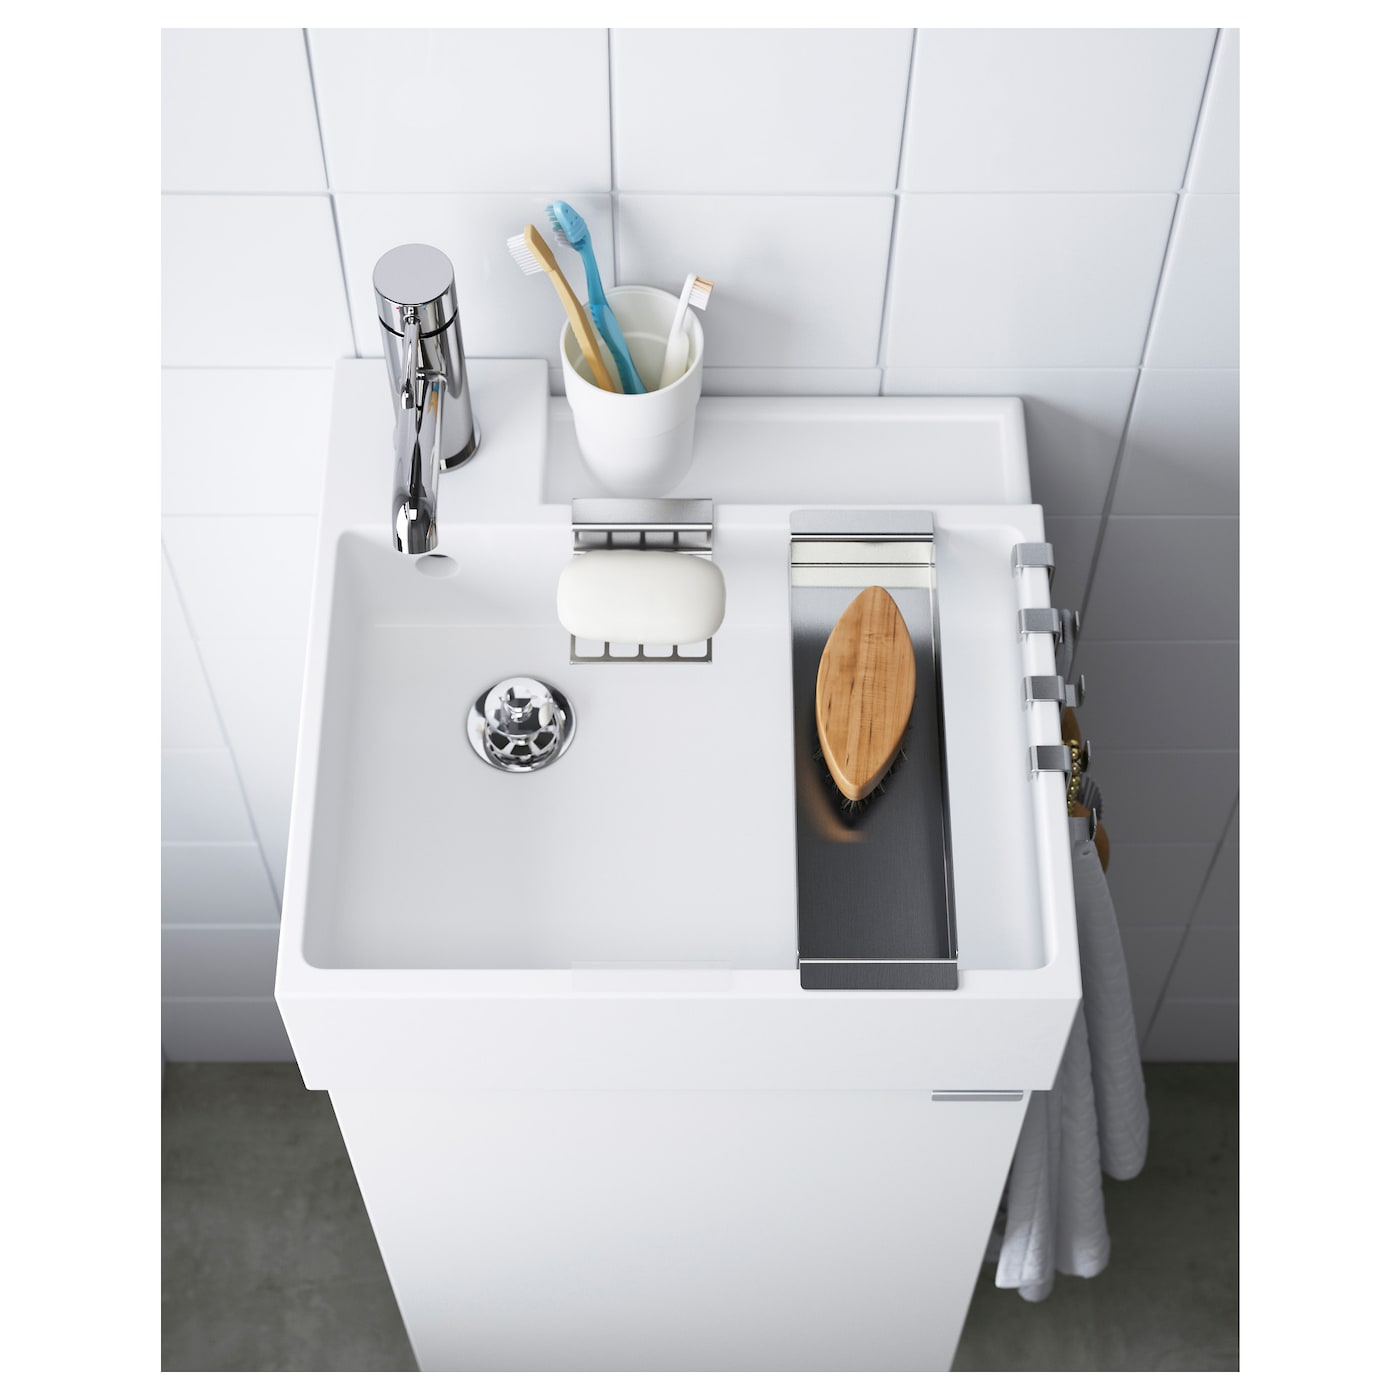 Height Adjustable Pull-out Sink Tap Home Kitchen Basin Laundry Table Dishwash